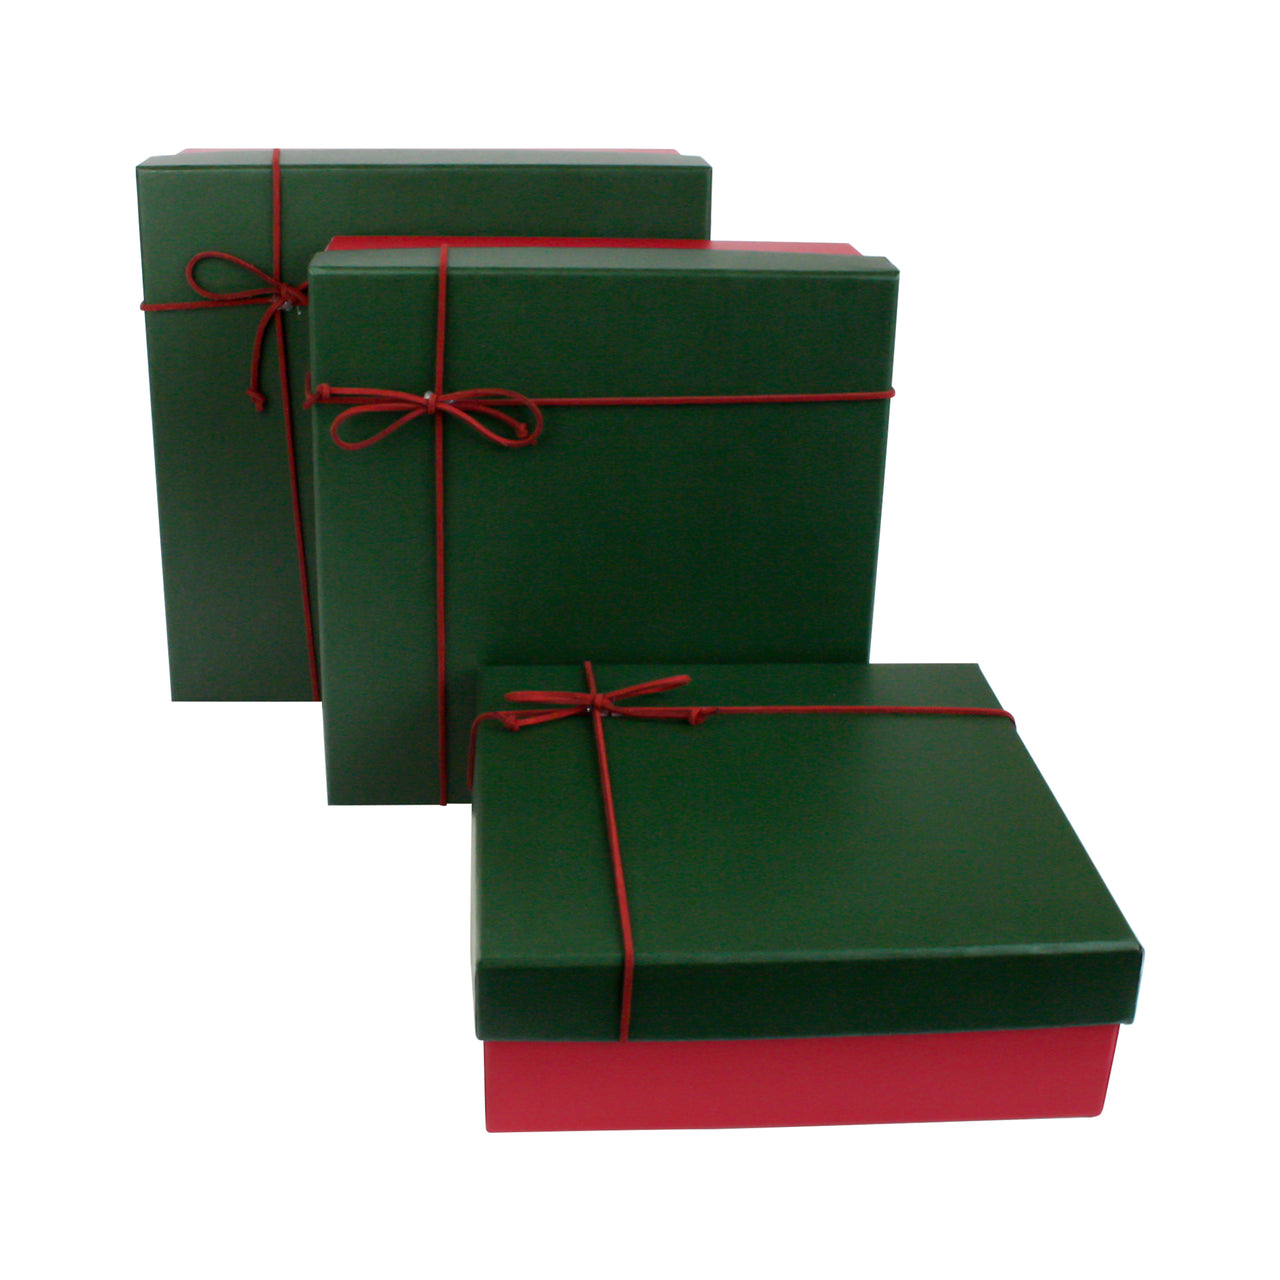 Red & Dark Green Square Gift Box - Set of 3